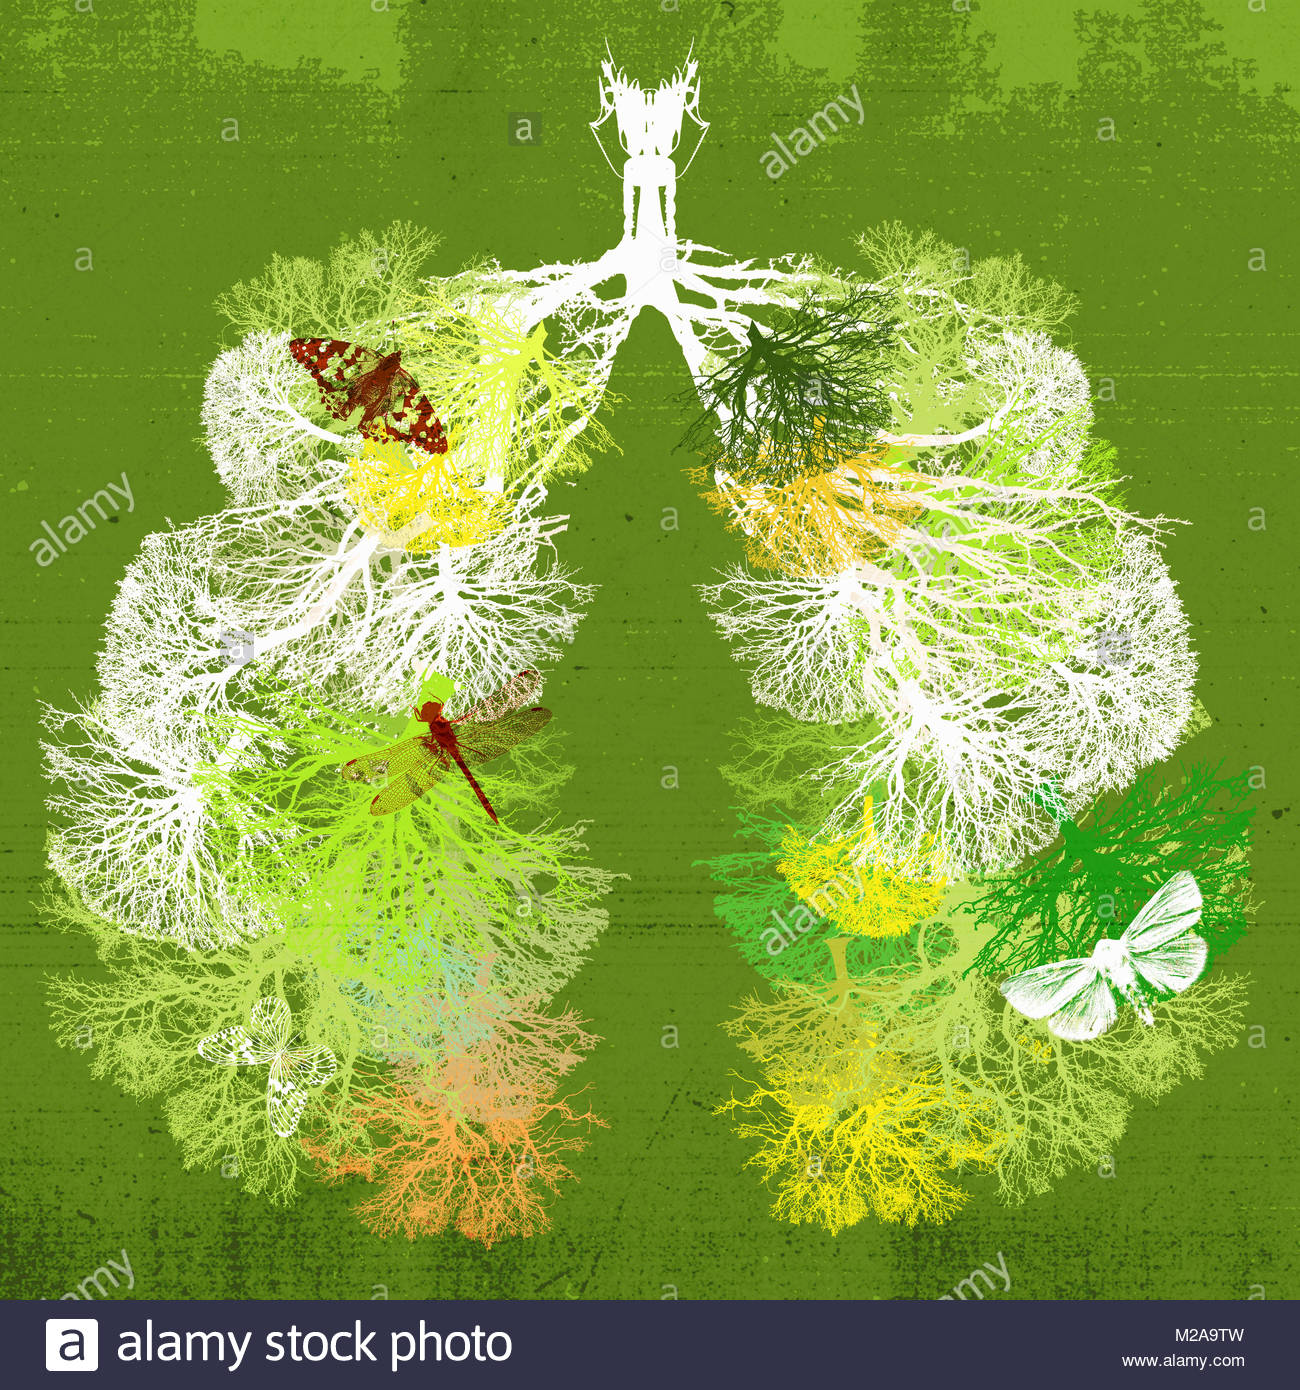 Branches of trees forming healthy lungs - Stock Image